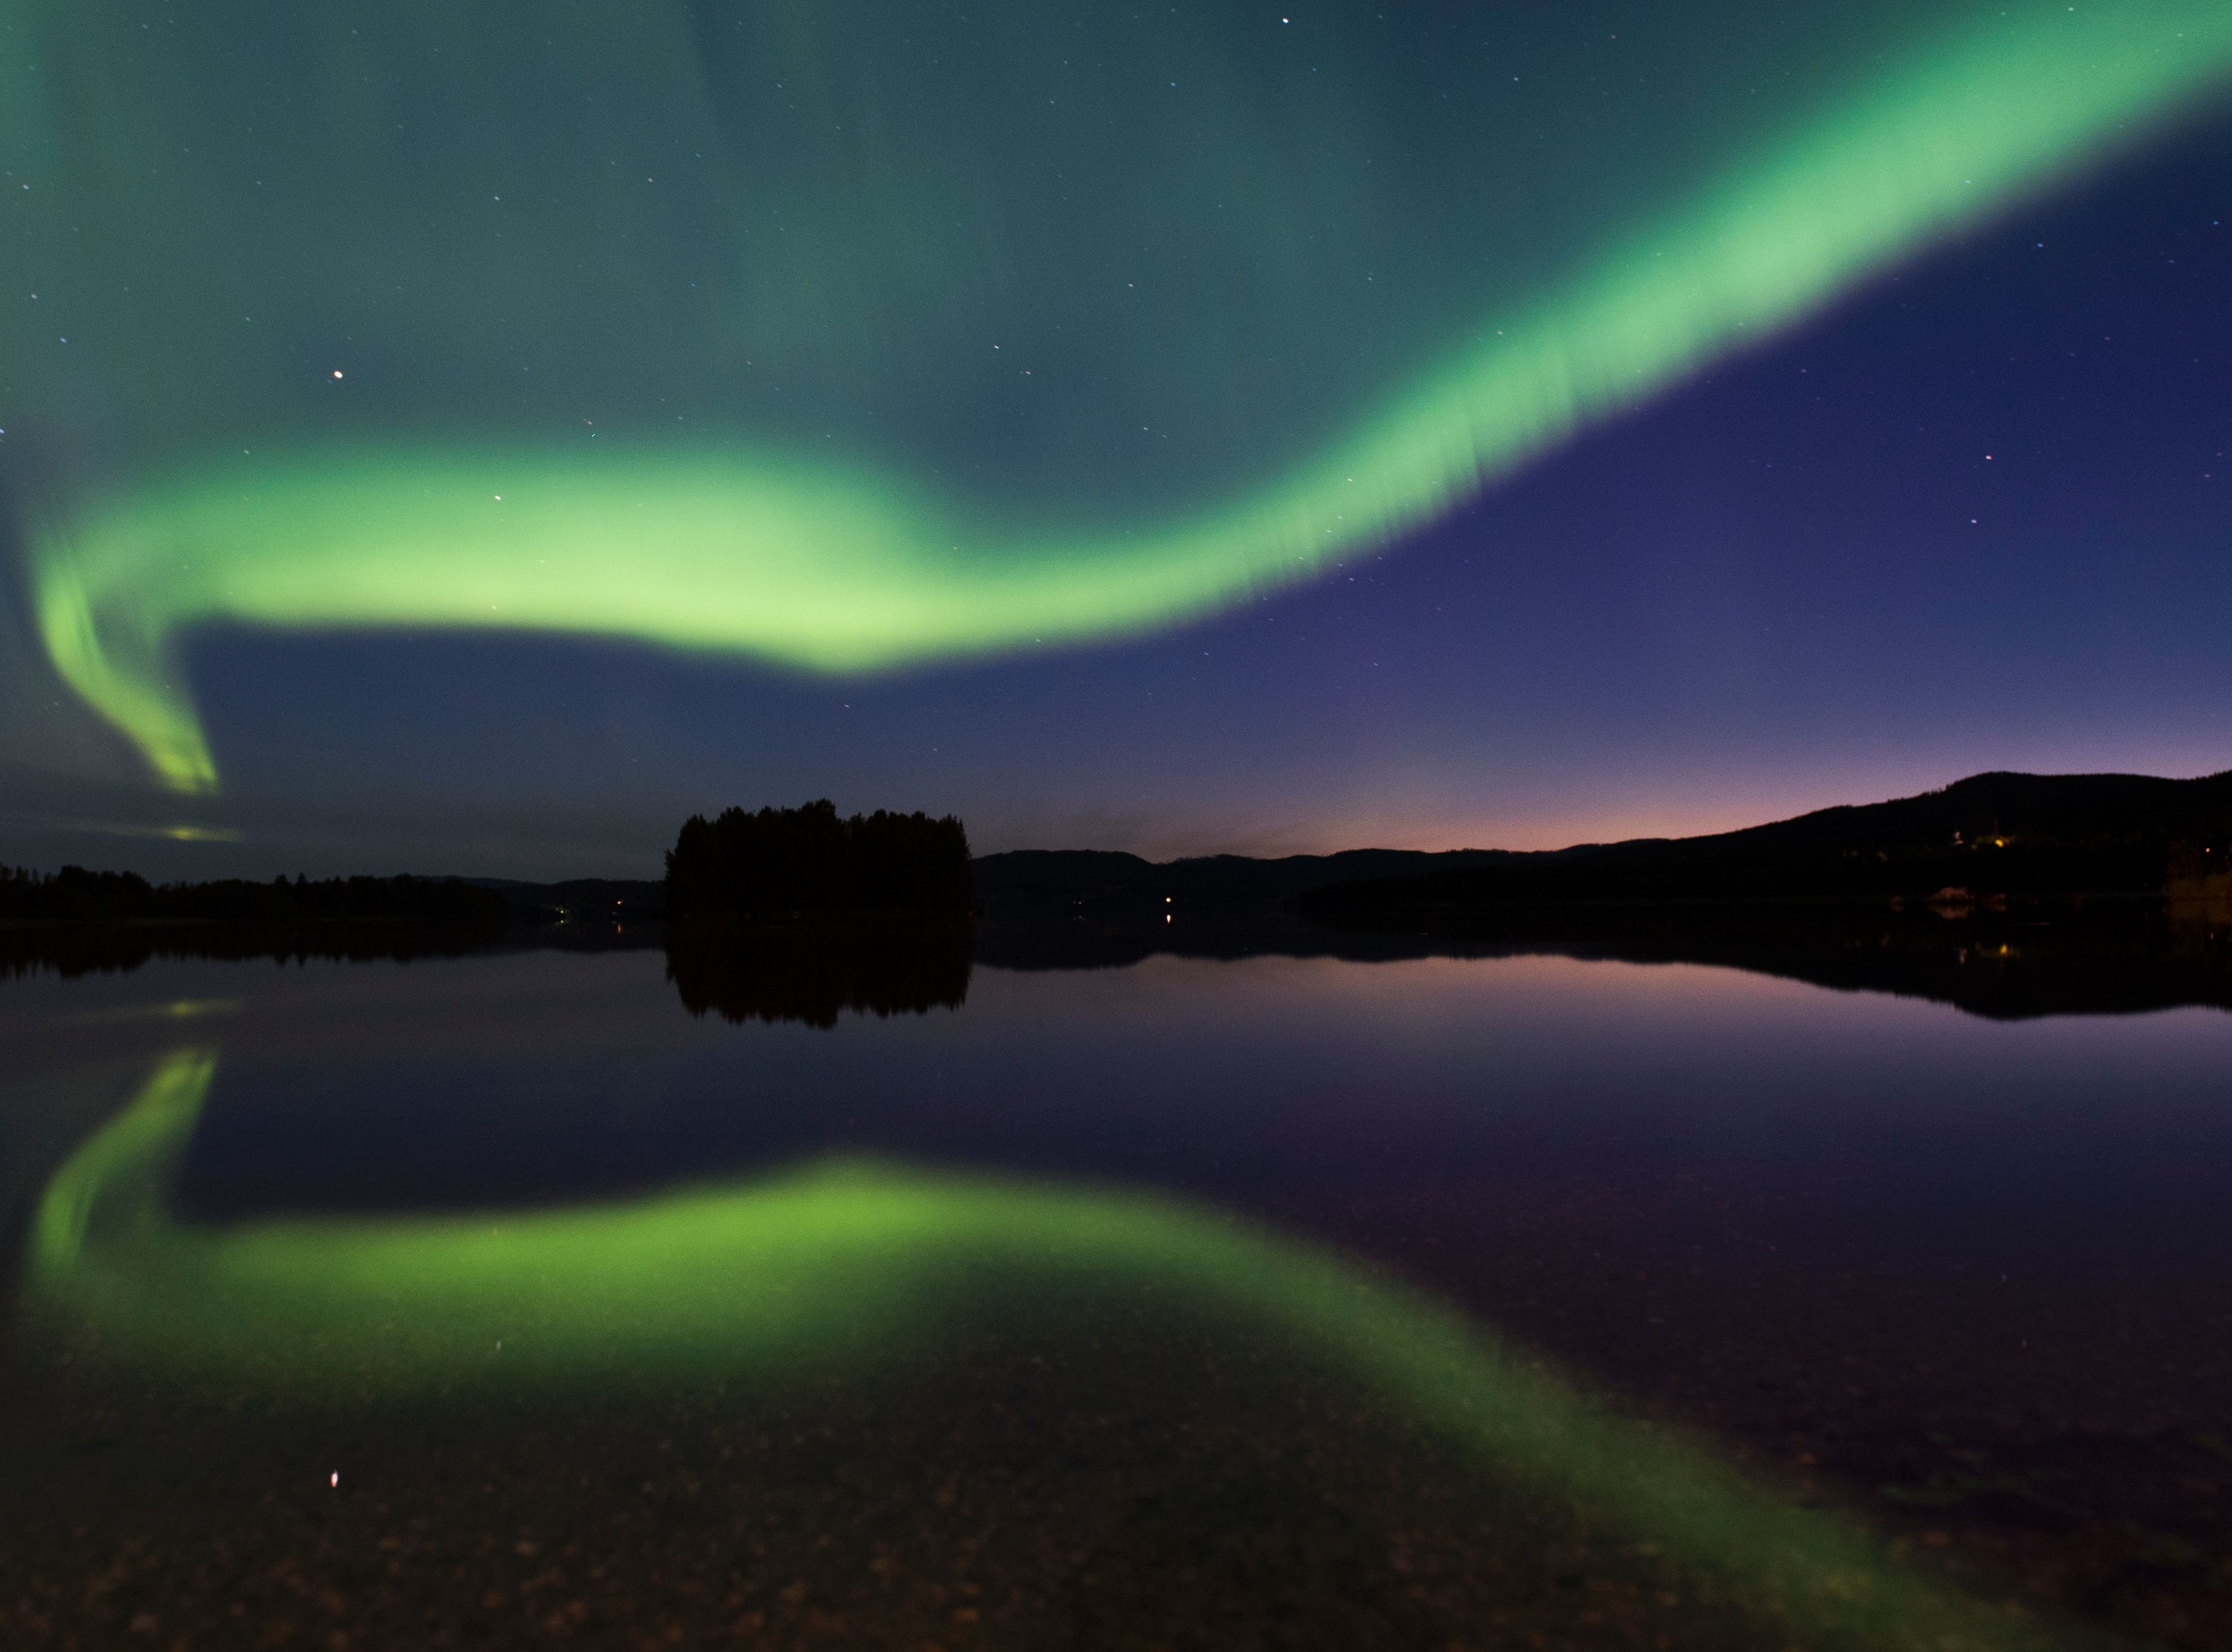 The Northern lights in Sweden.